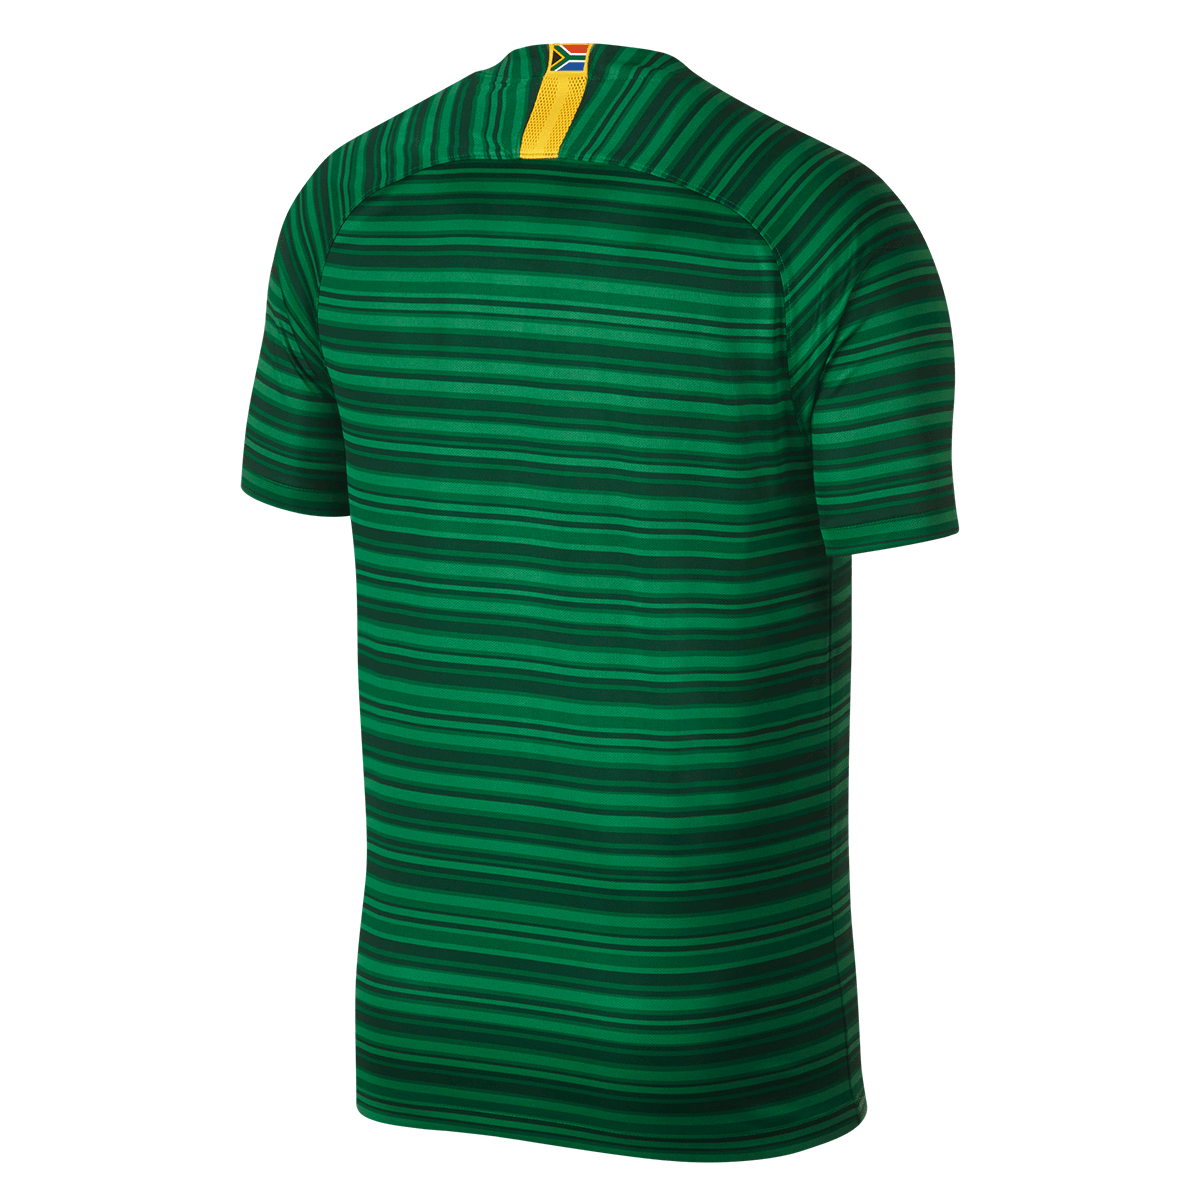 WM 2018 Südafrika SOUTH AFRICA T-Shirt Trikot Name Nummer